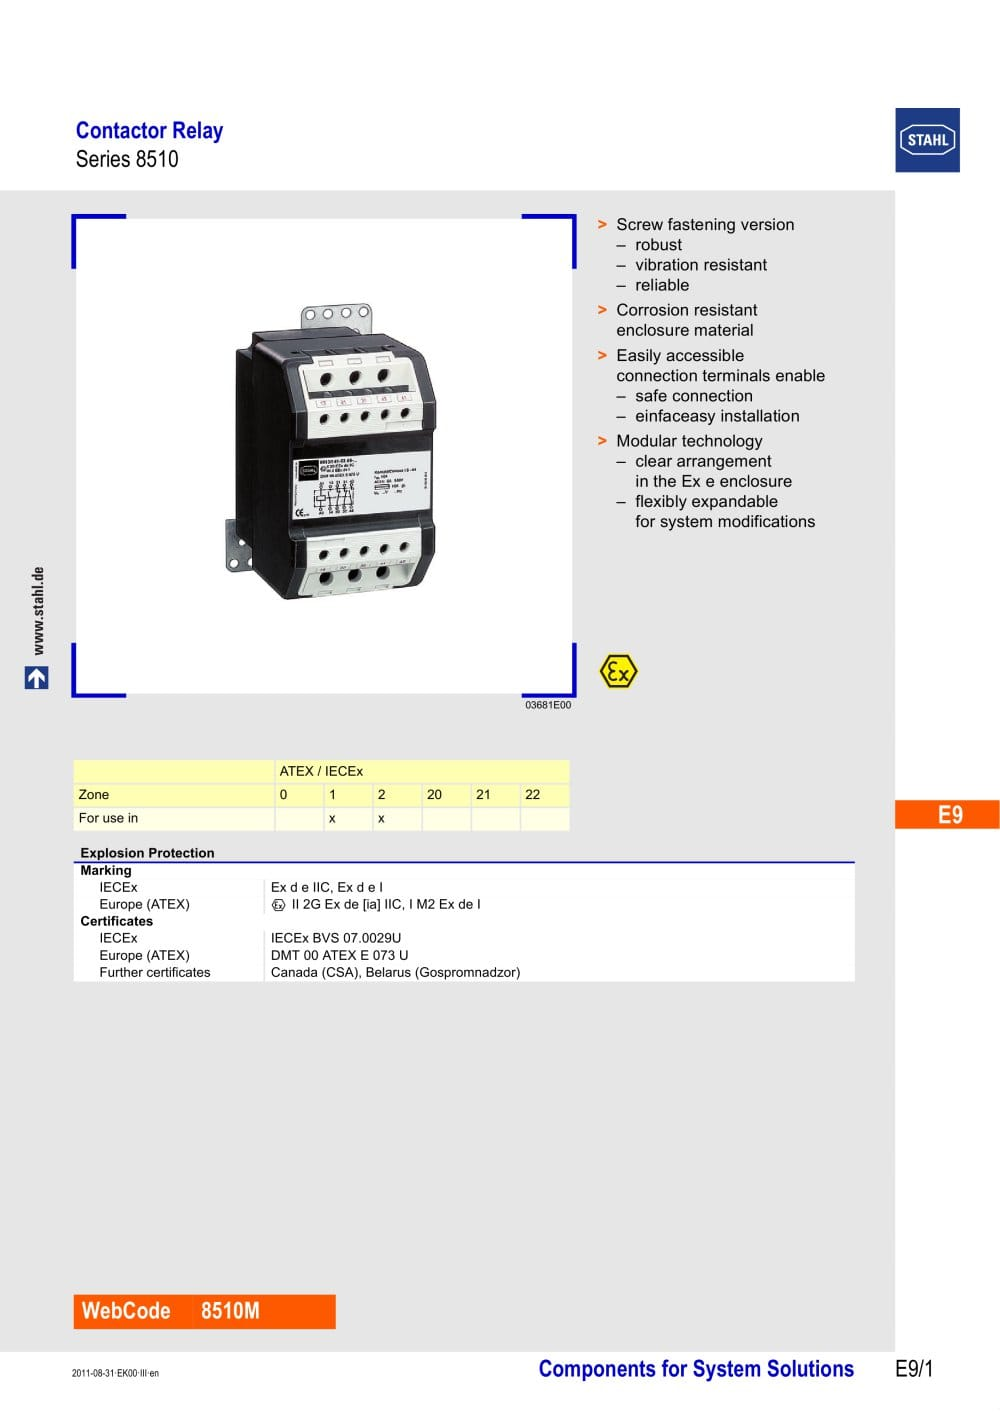 Contactor relay series 8510 r stahl pdf catalogue technical contactor relay series 8510 1 5 pages asfbconference2016 Images